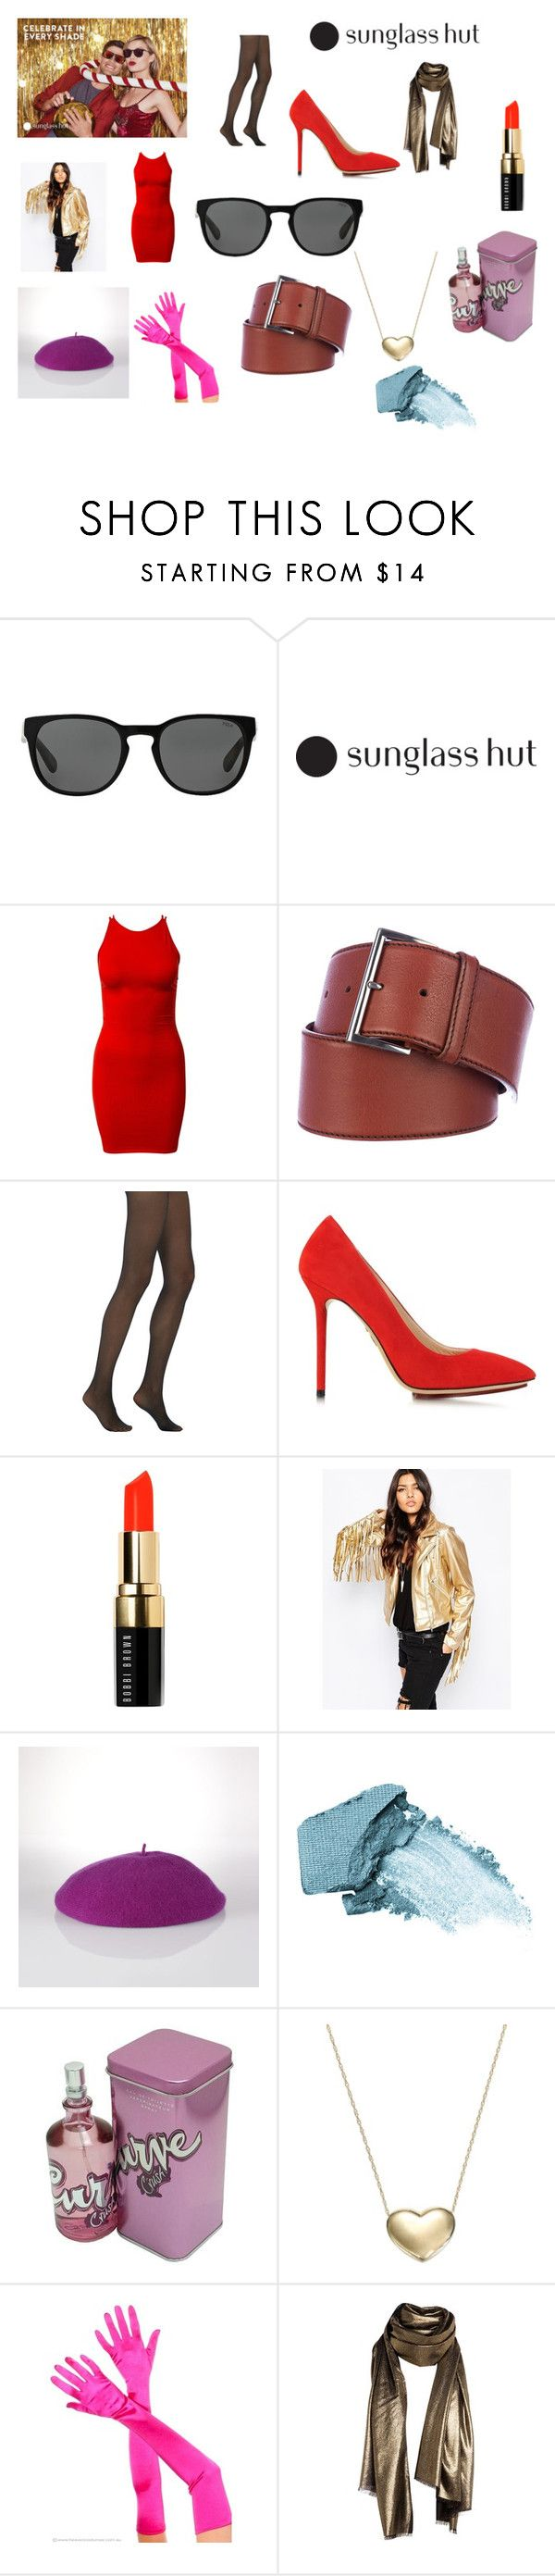 """Celebrate in Every Shade with Sunglass Hut 7"" by chrisone ❤ liked on Polyvore featuring Polo Ralph Lauren, Motel, Prada, Fogal, Charlotte Olympia, Bobbi Brown Cosmetics, Ralph Lauren, Stila, Liz Claiborne and Signature Gold"